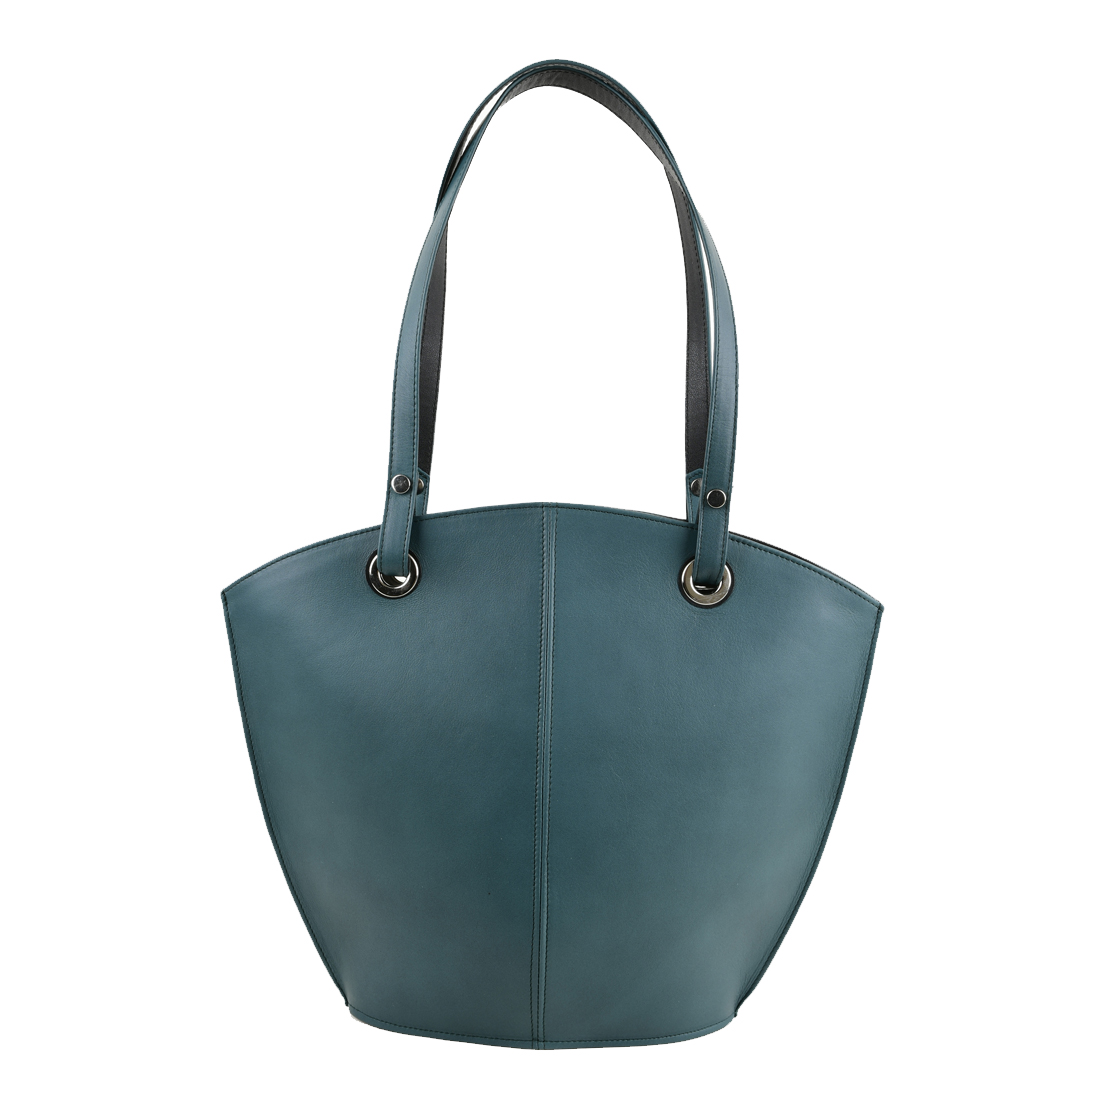 Audrey Teal Leather Shoulder Bag